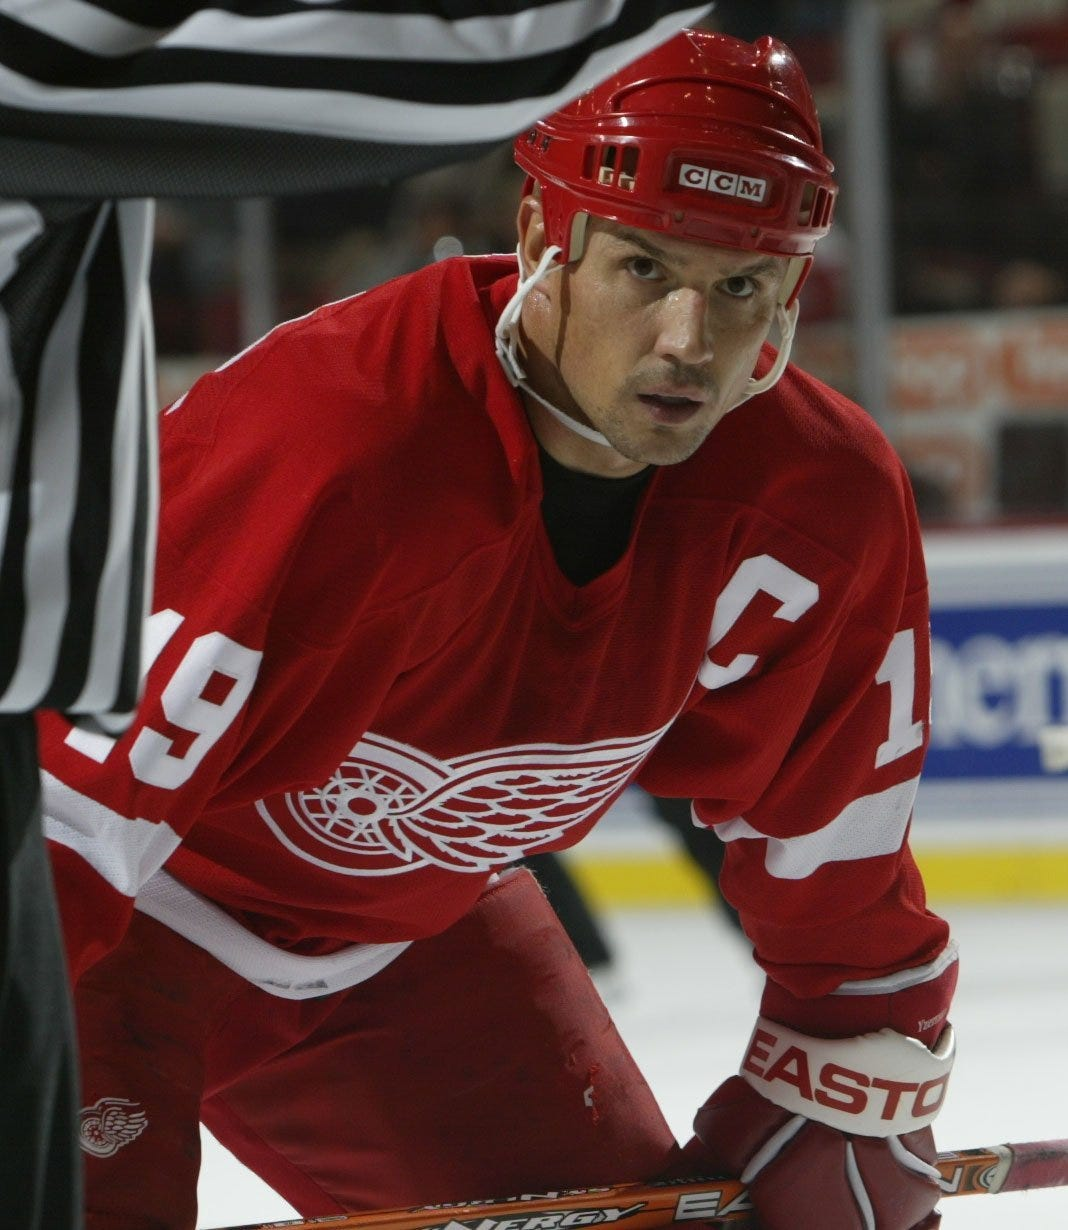 Steve Yzerman is a great captain who does the impossible